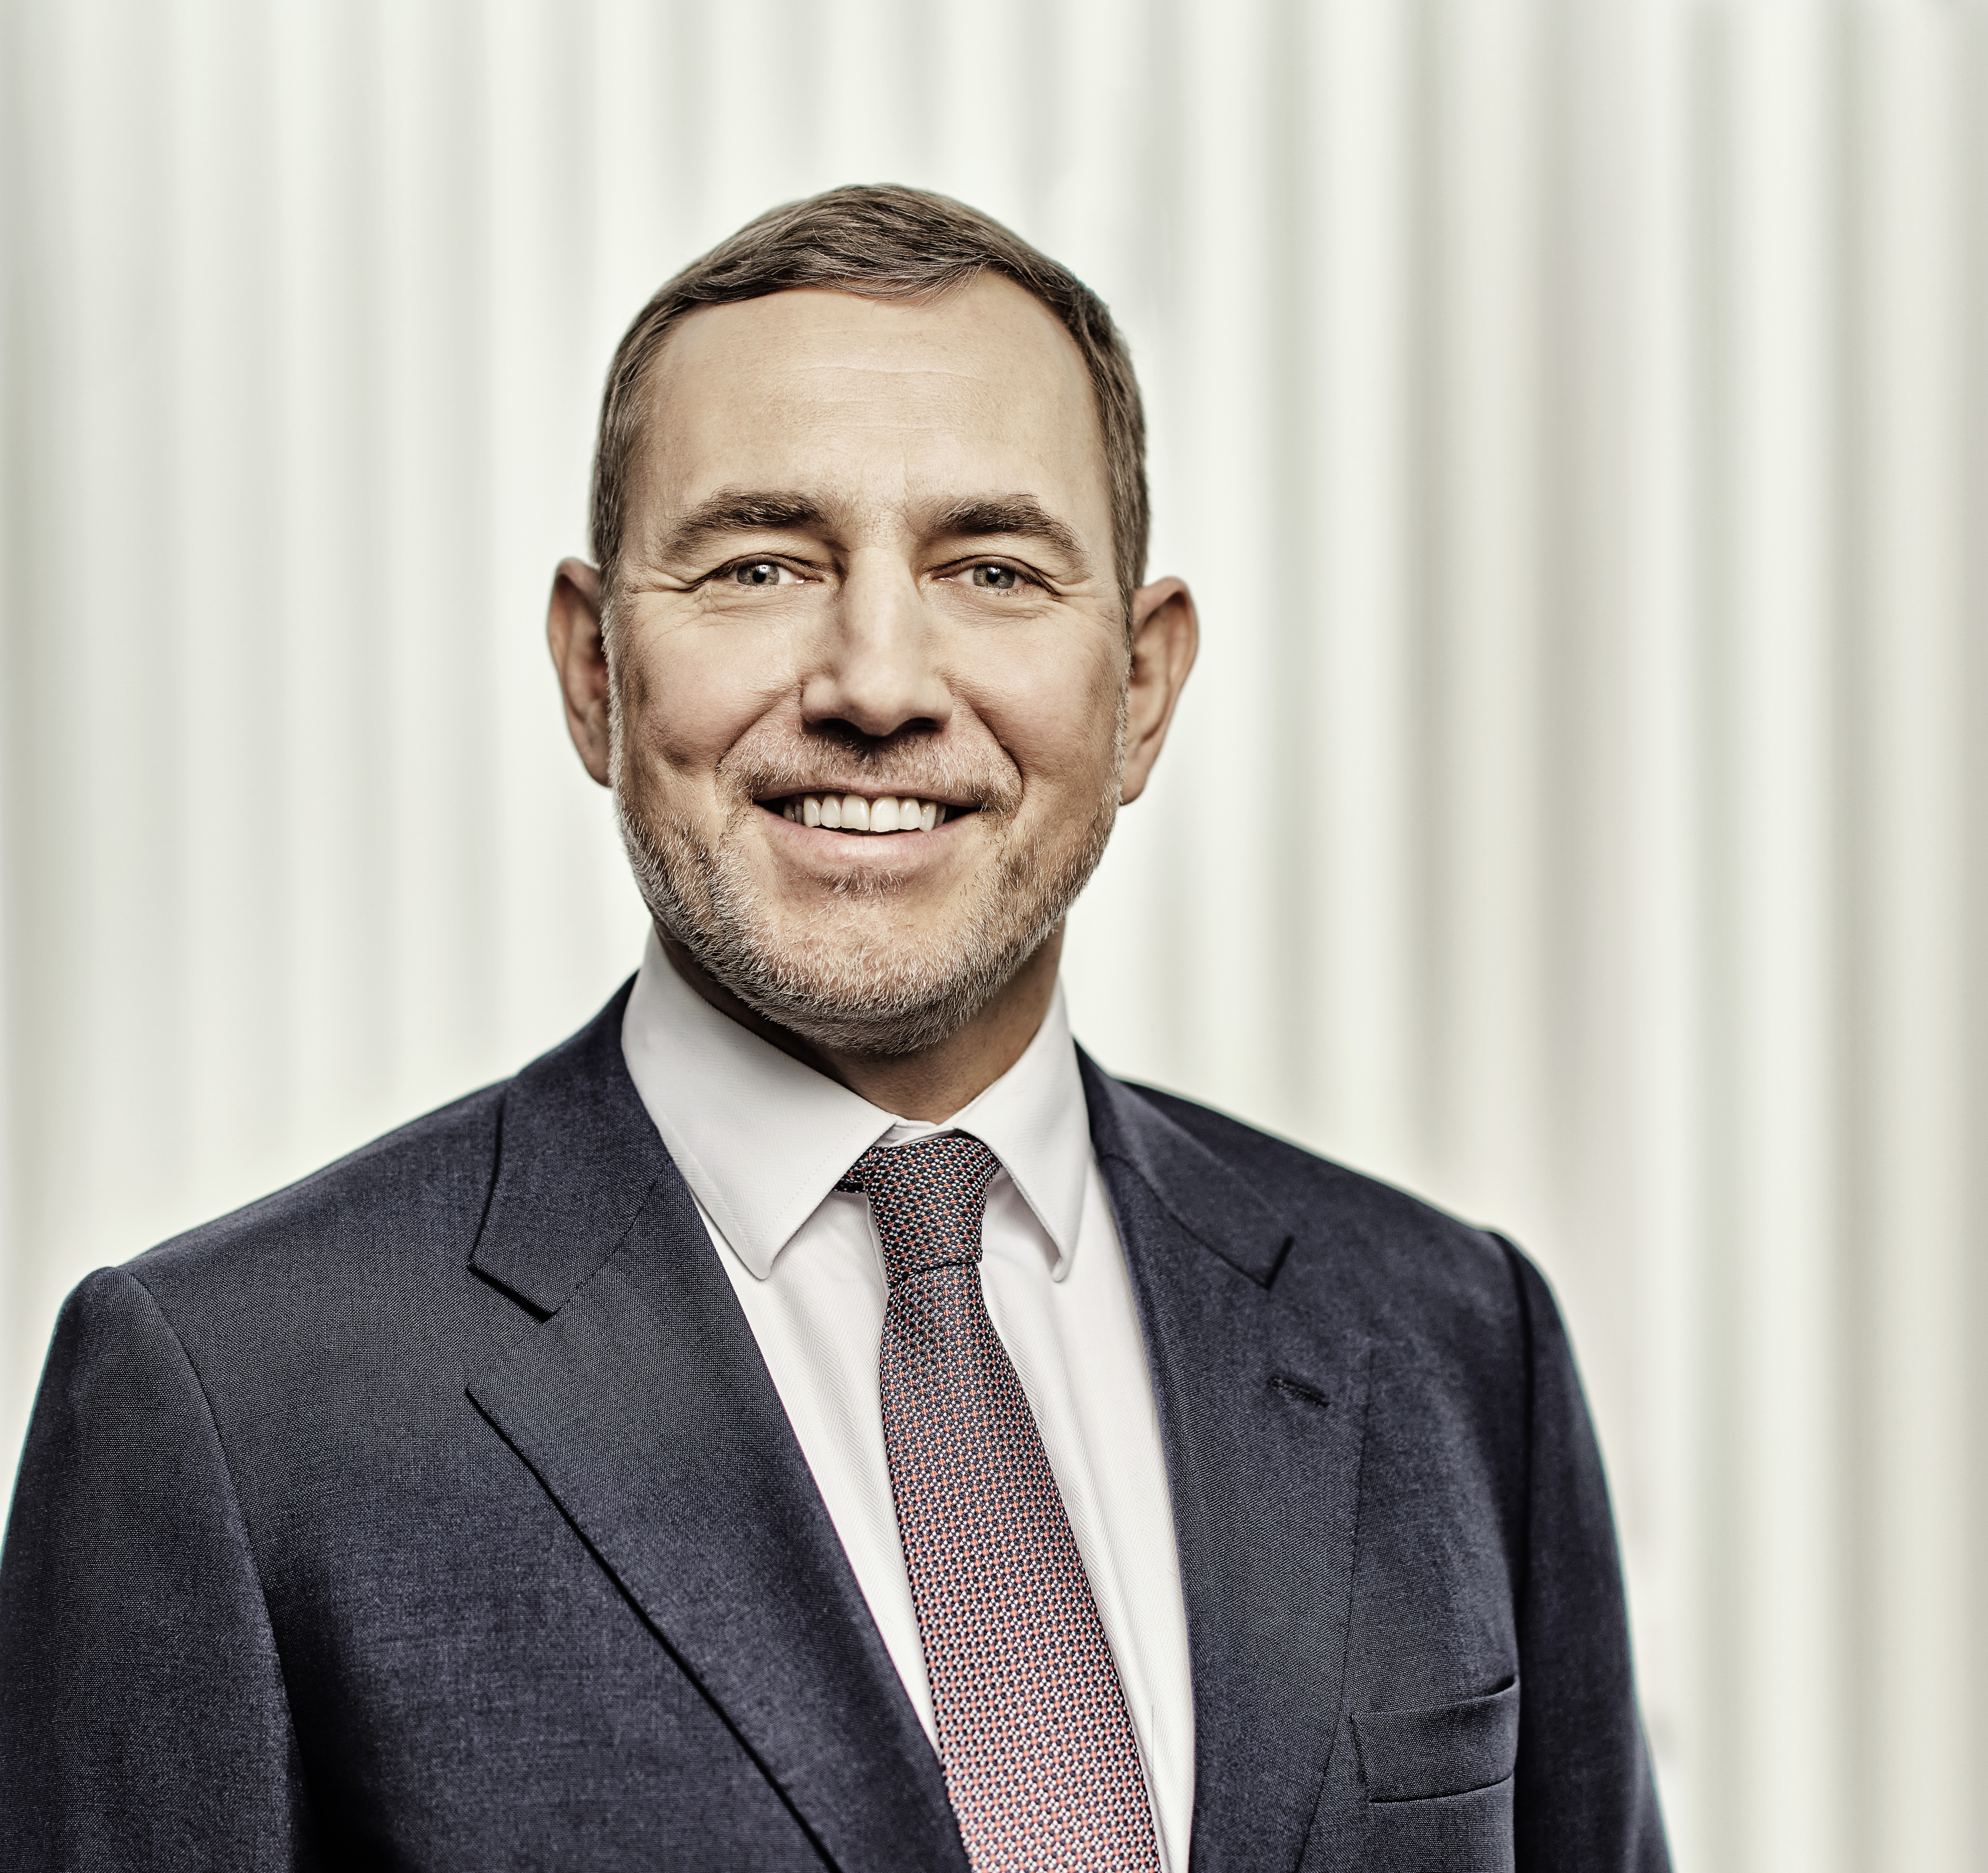 SKODA AUTO announces changes to Board of Management as of 1 March 2021 - Image 2